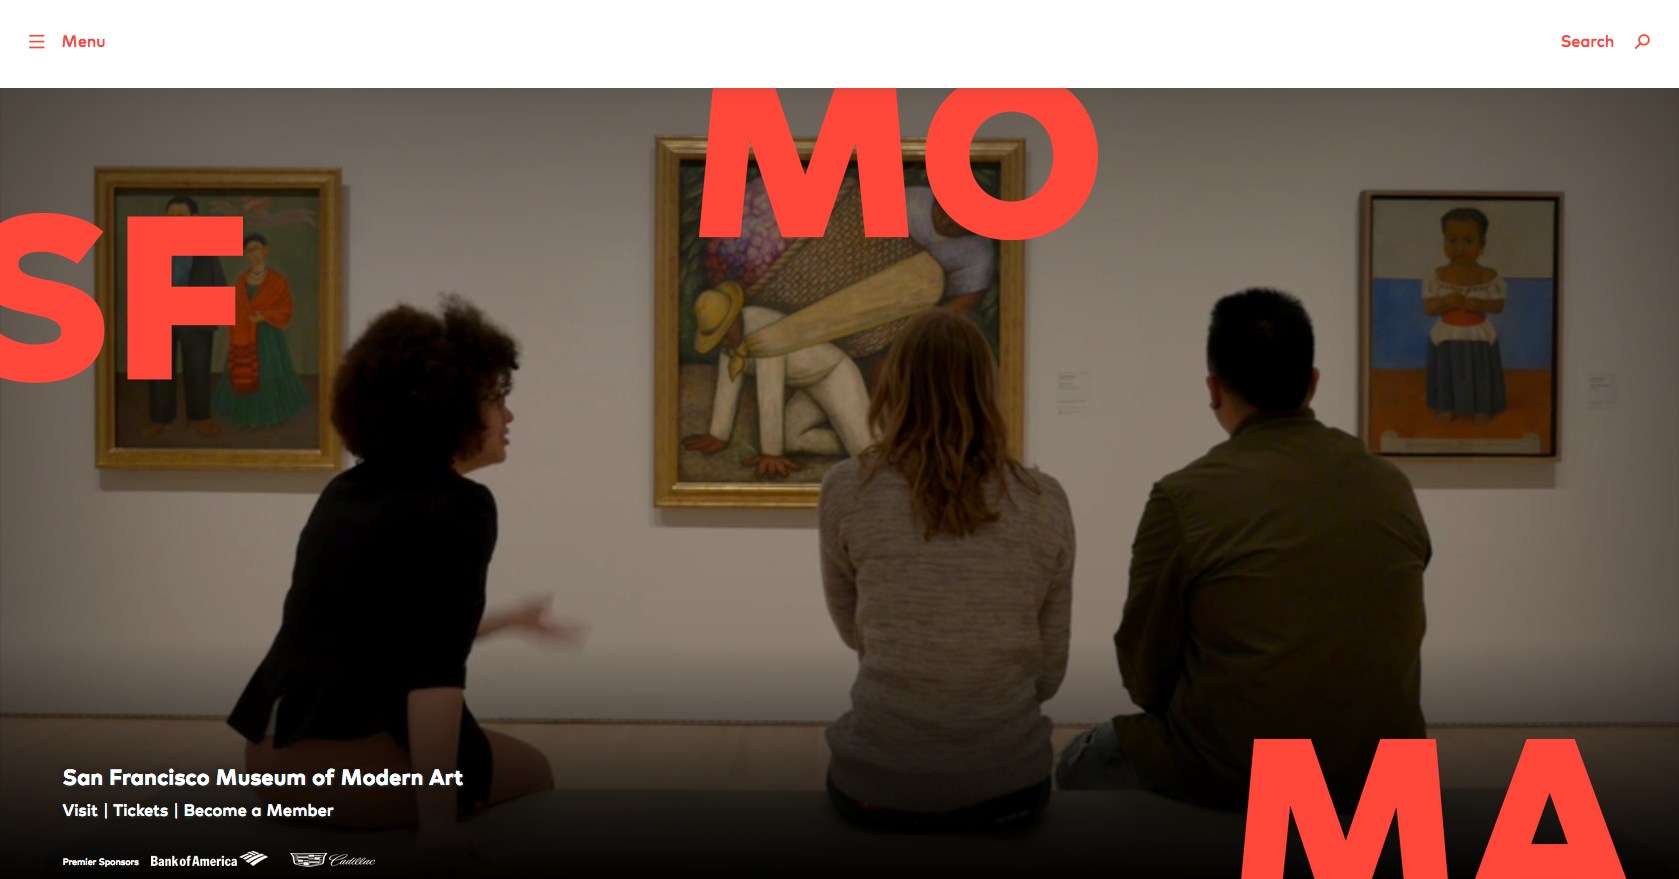 SFMoMA's website homepage